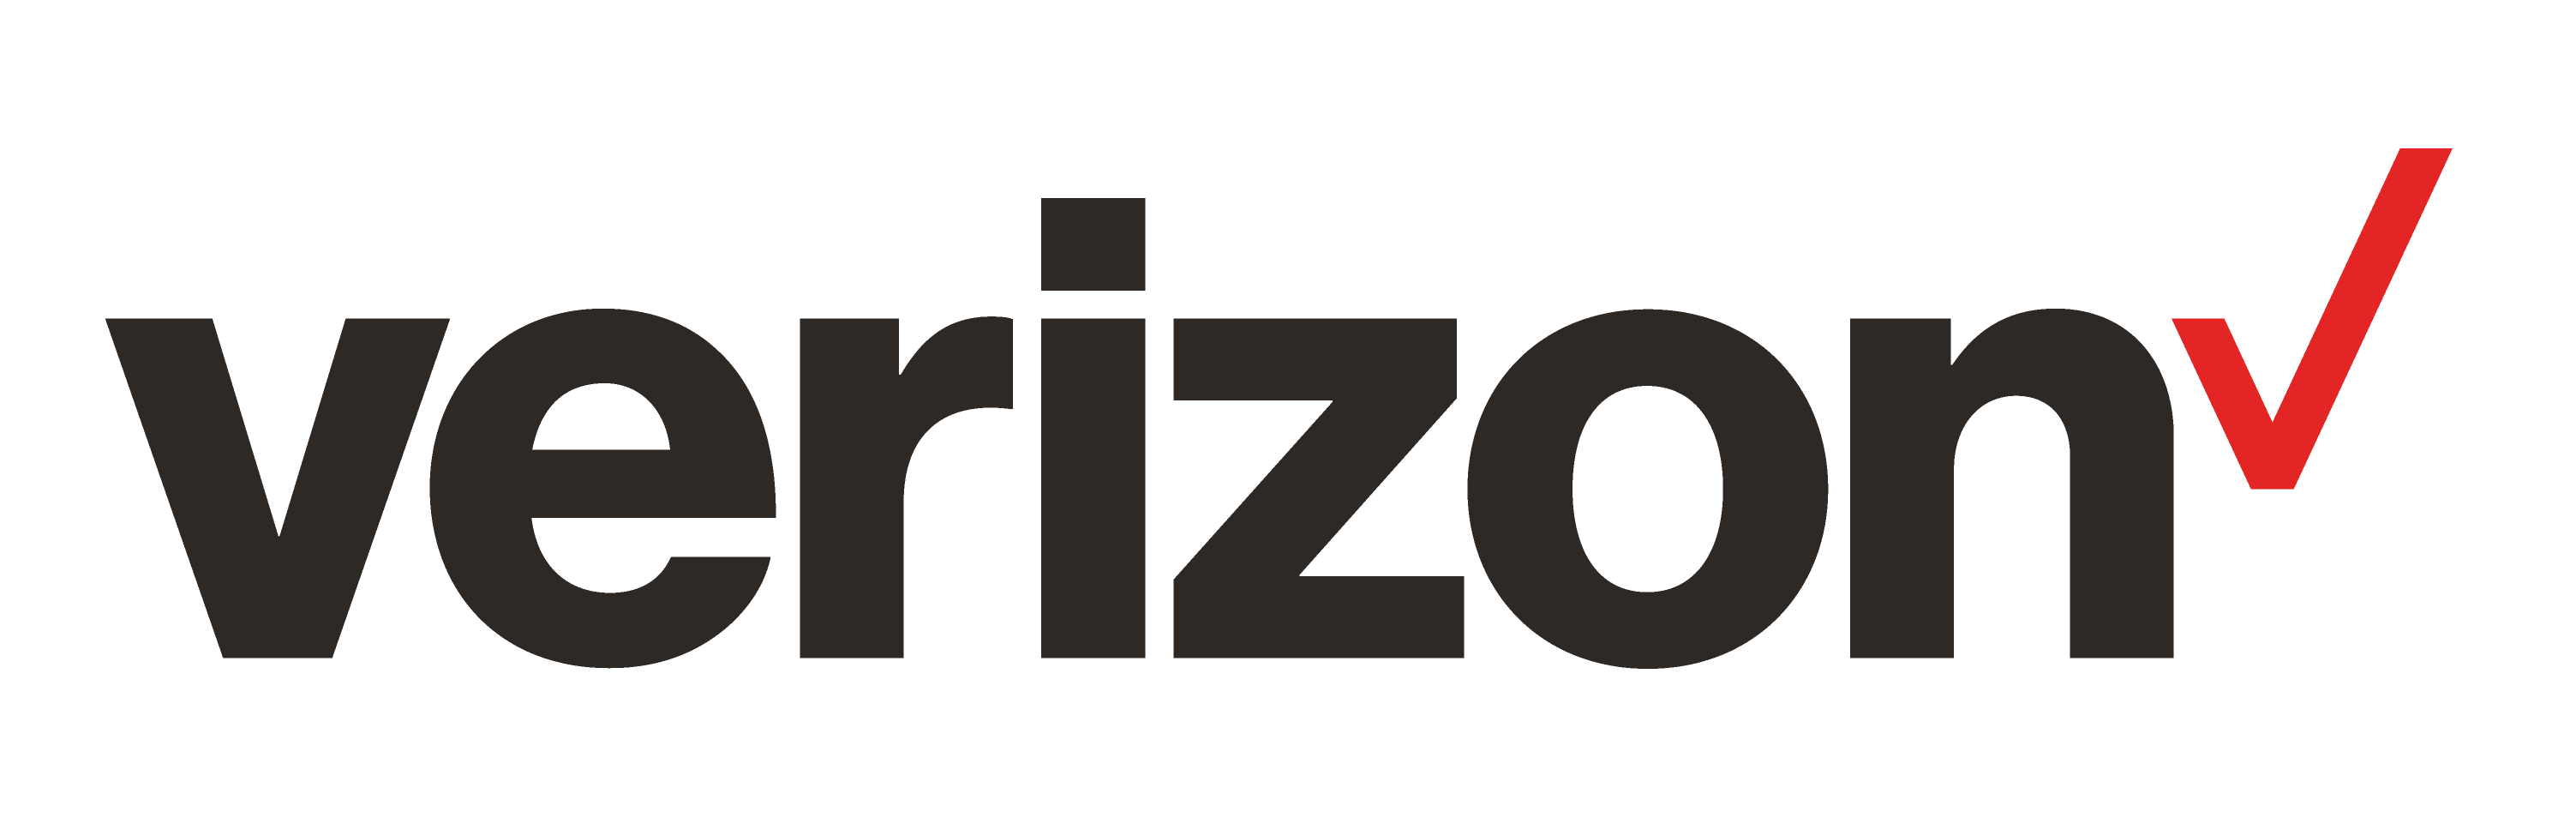 Rate Your Wireless Carrier Online Reviews At T Verizon Sprint T Mobile